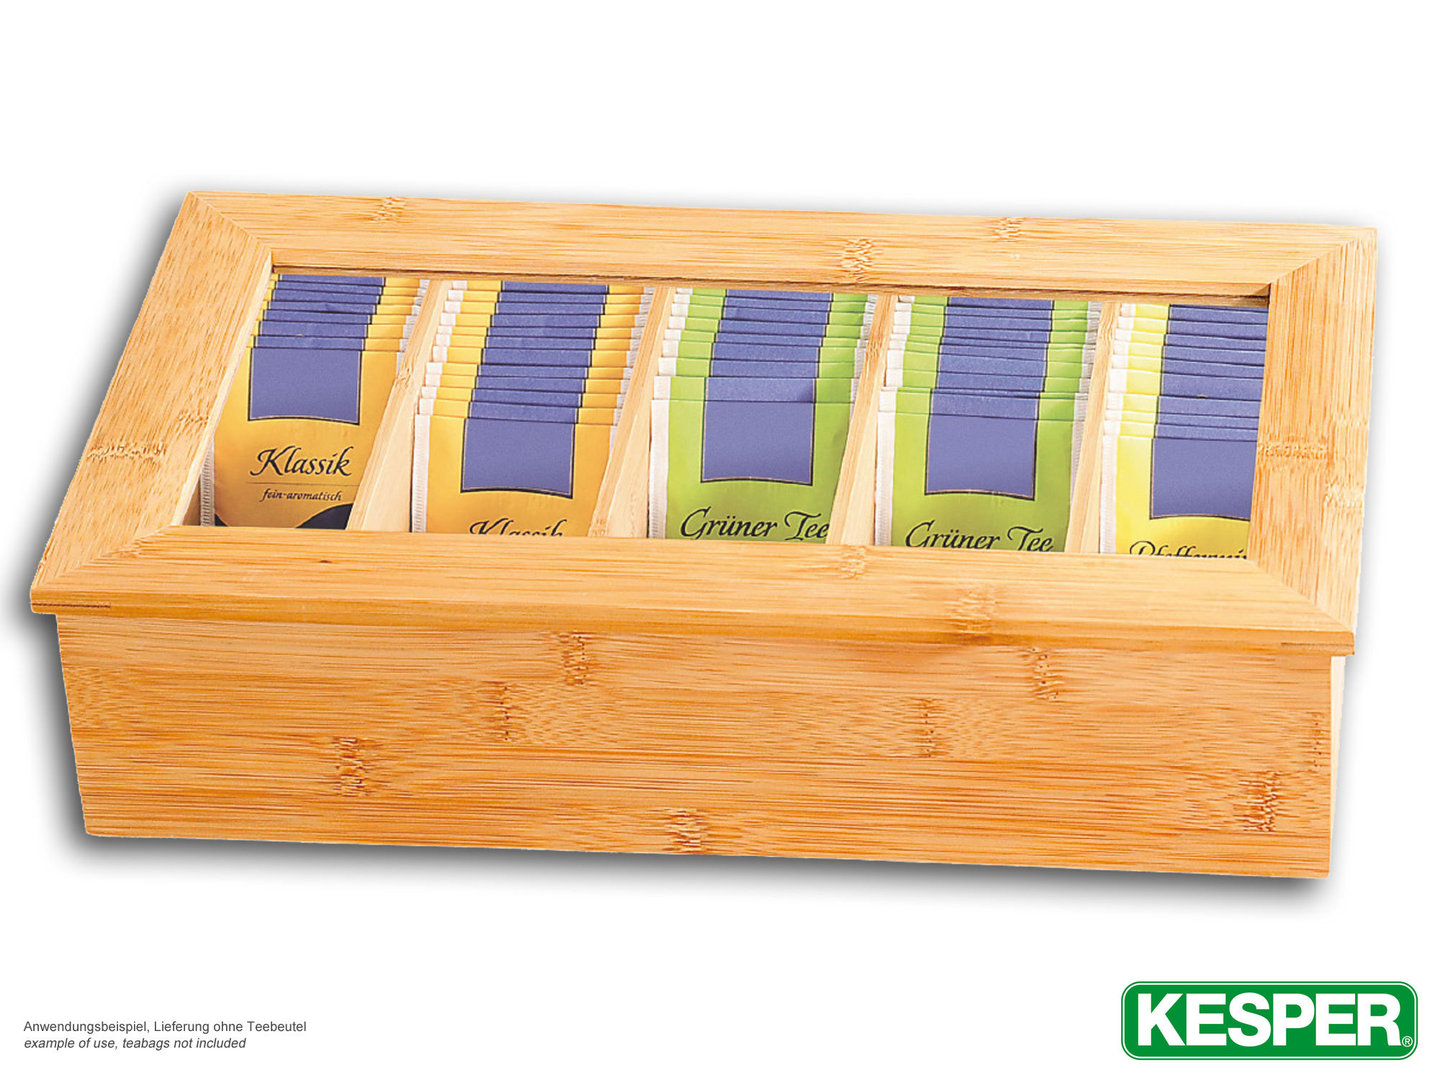 KESPER XXL bamboo tea box with window, 5 compartments